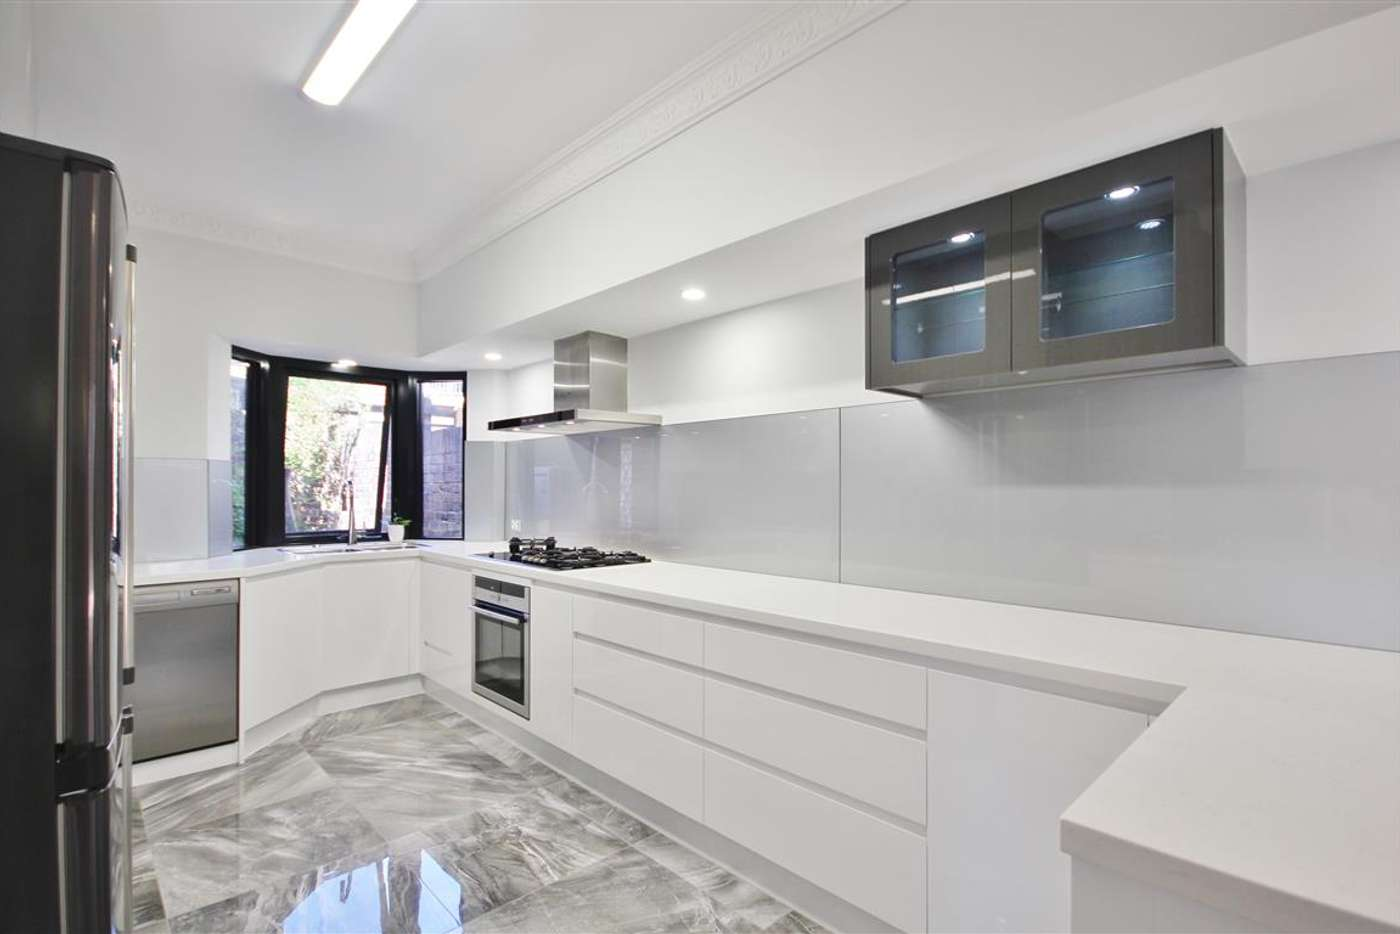 Sixth view of Homely townhouse listing, 1/15 KAROO STREET, South Perth WA 6151